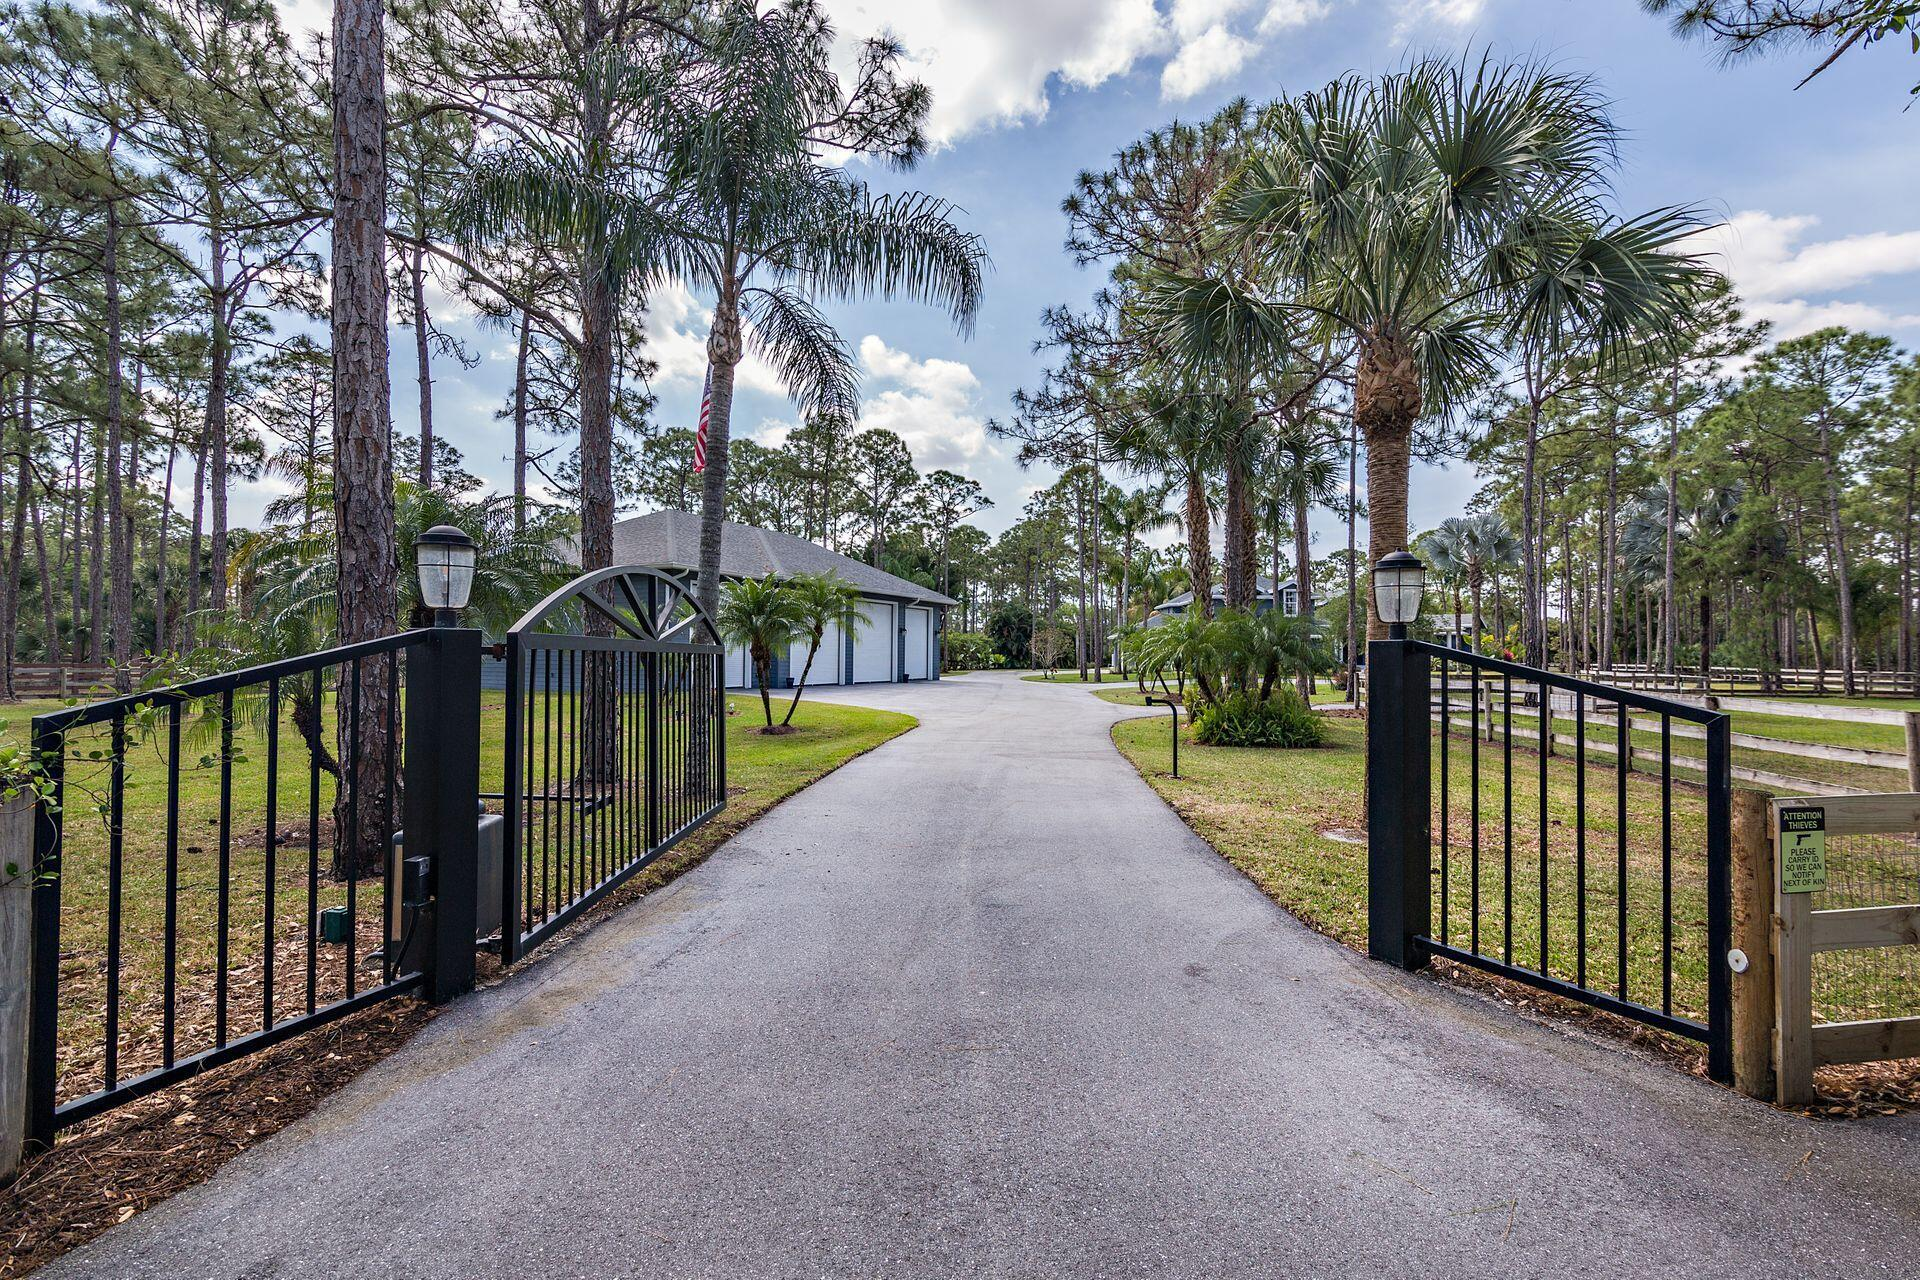 "All sizes approximateYour dreams have come true! This is the house you will proudly call home!This home has the space and privacy you have been looking for! Want out of the city but remain nearby...here it is!! This picture perfect home sits on 5.27 beautifully manicured acres! Property is all framed in with a three board fence and a impressive automatic gate!Home has been completely updated and is truly turn key!Once through the gate you will be escorted along a new expanded asphalt driveway meandering along the parklike setting. Recently freshly landscaped including plants, trees and even sod!As you walk up to the home the recently expanded and remodeled front porch will welcome you in. Home has recently been painted and redesigned with a modern day farm house feel A new roof was added in 2020 along with an leaf filter gutter system that runs under ground. Almost 100K spent on the remodeled kitchen! This magnificent kitchen will be your happy place with quartz countertops and an abundance of custom soft close cabinetry! Farmhouse sink, large pantry, custom lighting and a chefs French door oven. Stainless steel appliances and oversized Dutch door refrigerator.  Sunny breakfast room is large enough for a full size dining room table. Plantation shutters through out add to the comfortable but elegant feel.  Large formal dining room with built in wine cellar, crown molding, coffered ceiling and a large picture window! The gathering room will be a favorite spot to relax! Centered around a beautiful ceiling to floor stone faced fireplace. A wall of impact glass that gives you the feel of being outside! The Gathering room has access to the pool and patio. There is an office that is perfectly placed off the gathering room. All bathrooms completely updated in 2017 and 2018.   There are two master suites on the first level, they are conveniently separate at opposite ends of the home. Both have been completely updated and offer beautiful slider/french doors to the outside. The main master offers his and her vanities, seamless shower and a elegant stand alone soaking tub. Custom lighting and a private water closet! Both master suites have an abundance of closets with closet organizers. Main level offers a second family/game room/media room. Measuring 22X25 this room can be anything you want it to be. Would be perfect for the home office with its own private entrance and access to the two car attached garage. Laundry room is also located on the main level with a utility sink and cabinets galore!  The new staircase will take you upstairs to the perfect hangout. The common area that all three upstairs bedrooms share is that perfect place for homework, tv or computer. The upstairs bedrooms offer one as an en suite with private updated gorgeous bathroom and walk-in closet. The second and third bedrooms share an updated bathroom. All bedrooms are ample in size with large closets.  Stepping onto the lanai is like stepping into your private retreat. The invisible screen is automatic and will disappear or reappear with a touch of a button! The oversize patio deck offers plenty of space to relax by the pool! Pool has been renovated to include new stone, tile, autofill and an expanded wrap-around pool deck. There is also a convenient outdoor shower.  Current owners have added extra electrical outlets on the lanai for a future summer kitchen and power awnings.   Your four legged babies will love this center aisle barn that has been recently updated! Four stalls, a tack room/office that has A/C, new floor, cabinets and new lighting. New weather-grade ceiling fans and lights, automatic waters, wash rack and run out stalls. Fly system has new pumps and spay heads. Three large paddocks. Barn has an oversized utility shed for extra storage. New gutters were recently added as well as a fresh exterior paint and tack room remodel.  Calling all those with lots of big toys! This is the real deal! CBS built and one of a kind! 5 overhead doors, 1 door is 14 foot high allowing the ease of parking a motorhome or large boat! Four other overhead doors are 12 feet high and have commercial grade auto openers. At almost 2400 sq. ft. of air conditioned space you may never want to leave. This spectacular garage offers a full bath and a kitchenette.  Two part epoxy floor that will be there forever! Two welder receptacles, electric receptacles every 8 feet and three retractable electrical cords. Air lines strategically placed for a central compressor. Center part of garage slab was purposely poured thicker ( 6"" 3500 PSI) for future lifts. Garage is serviced by automatic generator, as is the whole property! Never without electric at this home! This garage is perfect for the car enthusiast!  One of the many amazing features of this property is the 45 KW whole property automatic generator. Property has a 1,000 gallon underground propane tank for the generator!  Auto on within 15 seconds of power going off. 2 transfer switches feed a pair of 200 amp panels. This generator powers the house, barn, and detached garage, everything!  Just a few of the upgrades and amenities include,  Home has recently been painted inside and out All windows and all doors on entire property are hurricane impact. Interior remodel in 2017 All light fixtures inside house replaced in 2017 Complete new landscape package in 2020-2021 Pool deck/patio expanded and upgraded in 2020 Two irrigation systems that were updated in 2018-2020 and are regularly maintained. Pool renovated in 2020 Garage/Shop built in 2019 Complete exterior remodel in 2020, including stucco that looks like lap siding, new roof, new windows, shutters, new screened lanai and gutters.  Entire driveway lengthened and surfaced with asphalt 2019 New Kitchen 2017 All bathrooms new 2017 New flooring 2017 New stairway 2017 New Interior Doors 2017 New septic/drain fields 2017 New gutters on the house, garage and barn (leaf filter) intricate underground gutter drain system. Upgraded water system, new pump and new water well in 2020    45 KW whole property automatic generator 1000 gallon buried propane tank for generator. The list goes on and on!! Hurry don't wait this one wont last!  The wonderful community of Caloosa is an equestrian community that consists of 350 five acre home sites in Palm Beach Gardens. Fifteen minutes to Fla. Turnpike, 95 and the Gardens mall. Twenty five minutes to downtown West Palm Beach & Palm Beach International Airport. Caloosa's 32 acre horse park makes this neighborhood a real estate gem in Palm Beach County with over 30 miles of interior horse trails. Caloosa's community amenities include: dressage arena, a riding arena, jump course and a cross country area. Multiple tennis courts, children's playground, basketball courts and a barbecue area, community meeting room and restrooms. The private park is for the exclusive use of Caloosa residents and their guests. Caloosa residents enjoy events such as movie nights, chili cook offs, barbecues, holiday parades, benefit rides, demonstrations, and horse shows."